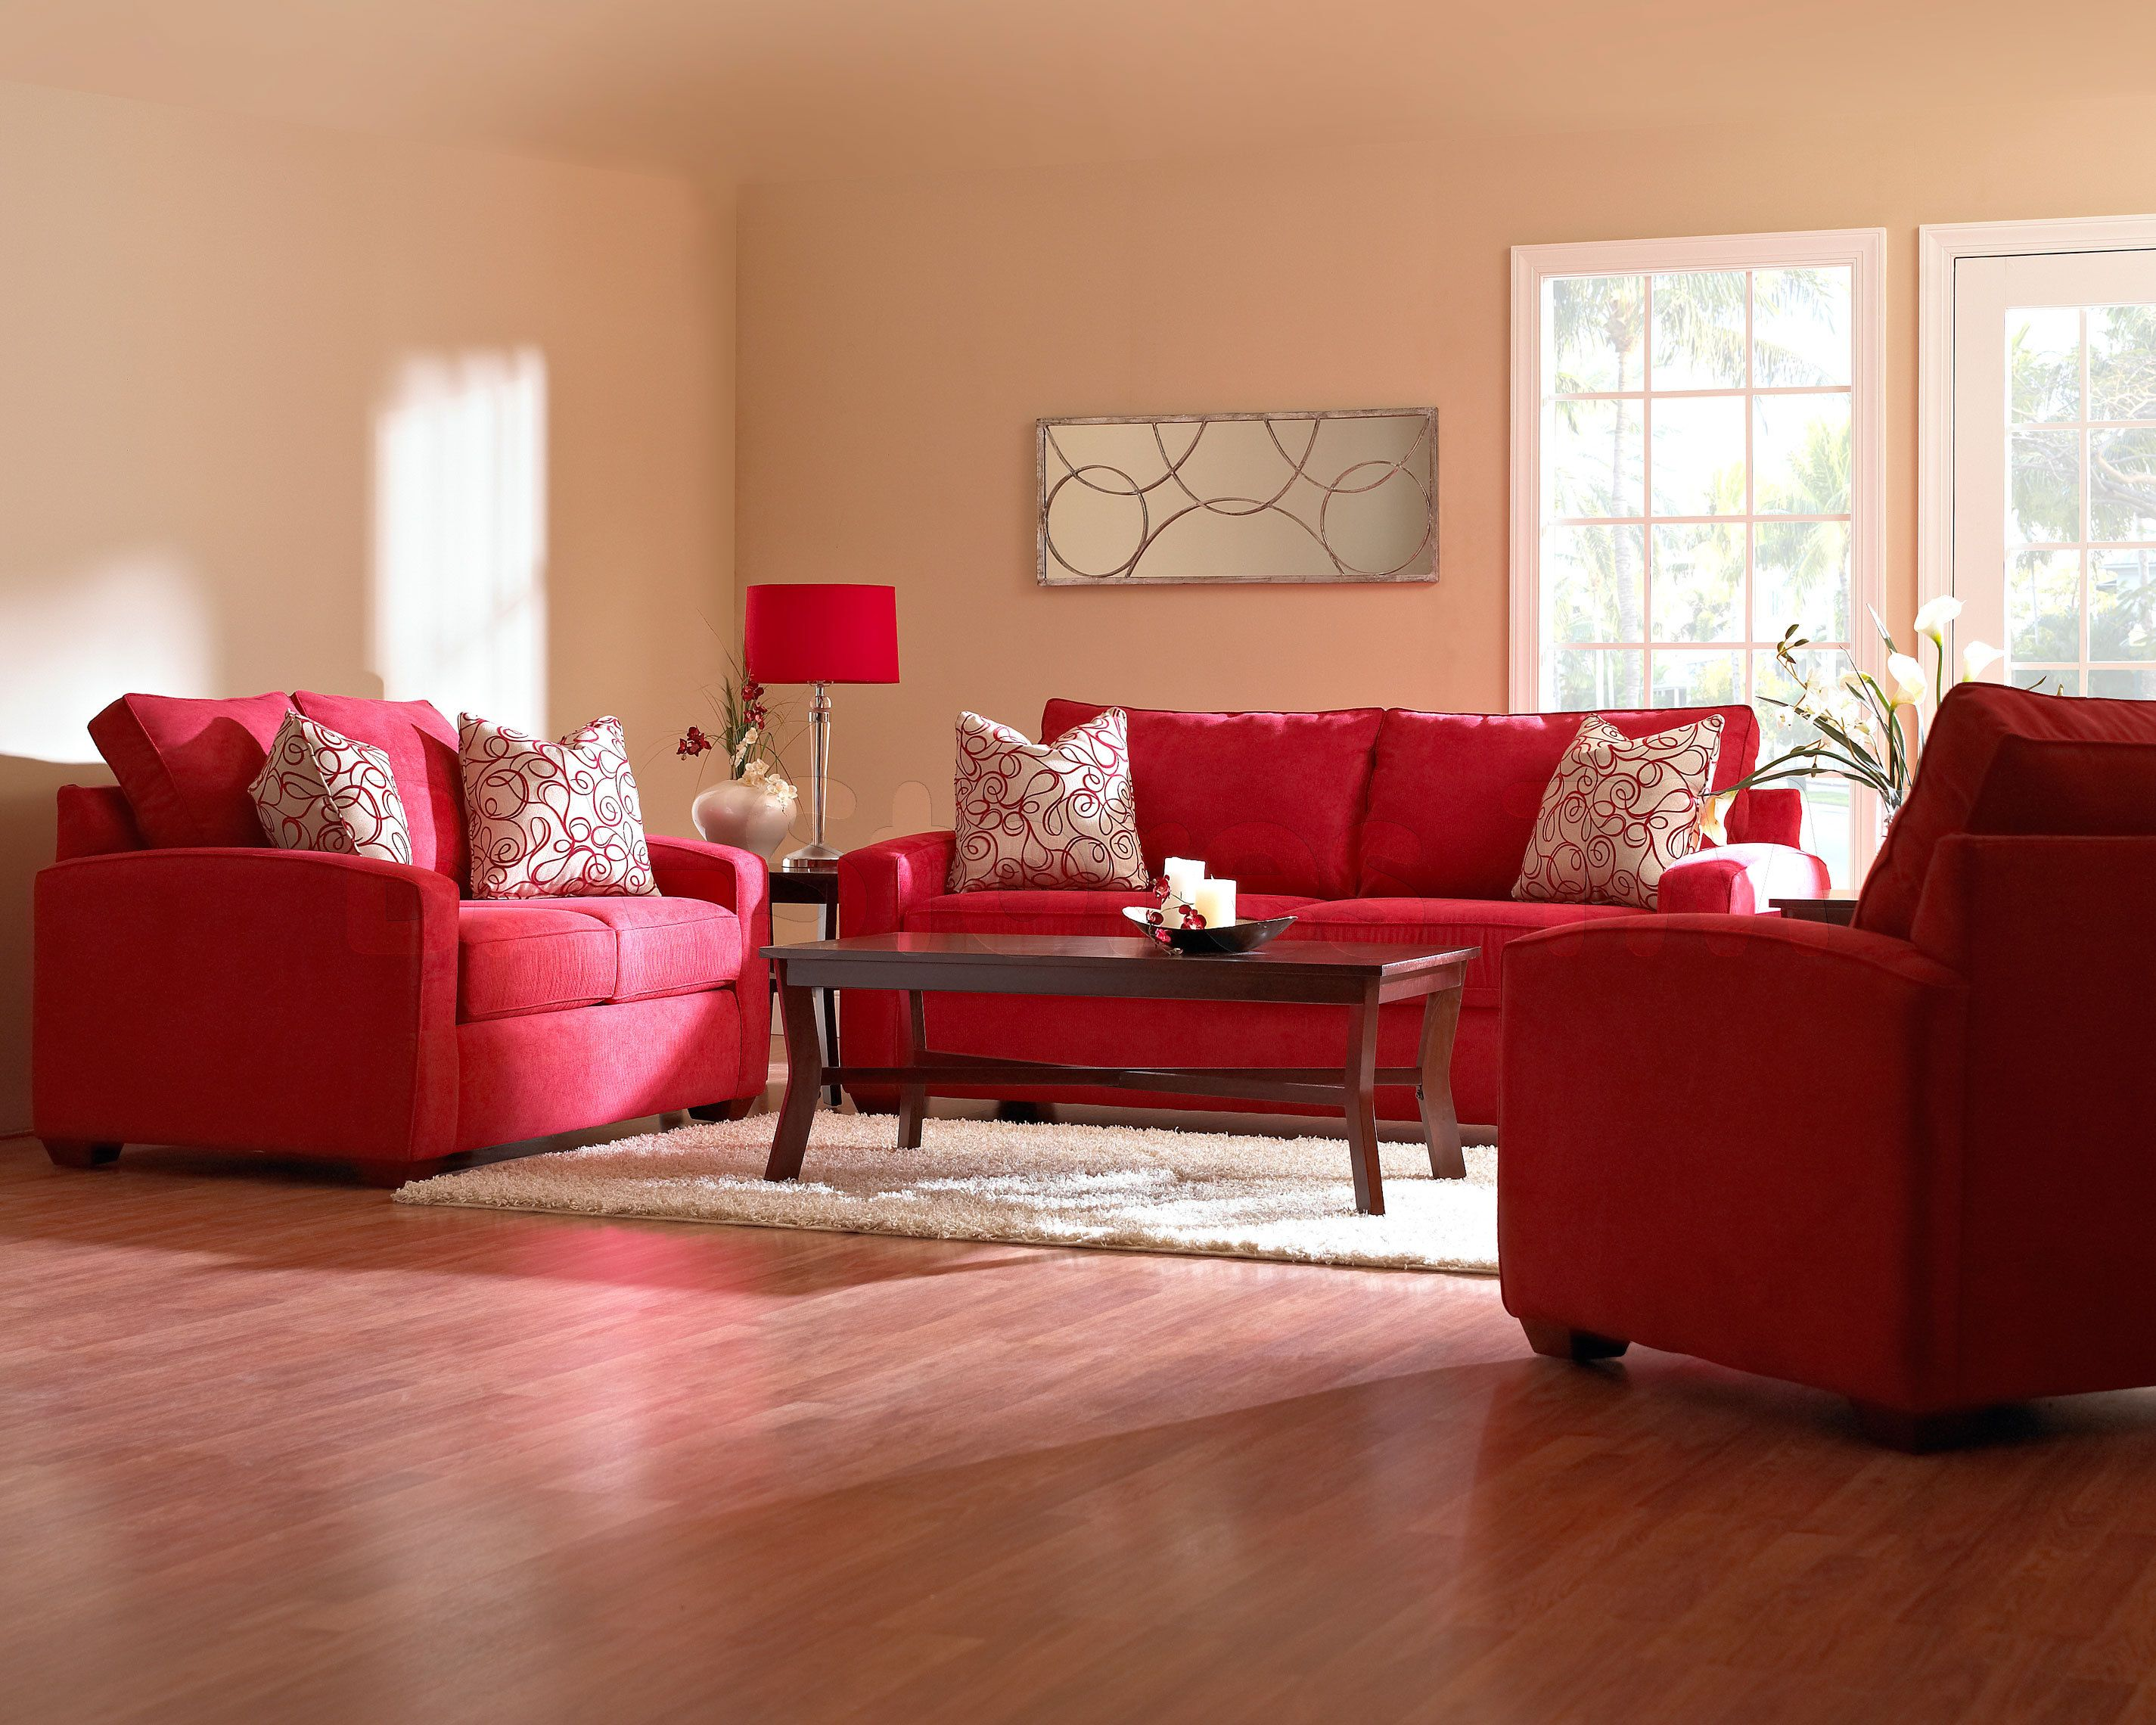 Image result for living rooms with red furniture  Red sofa living